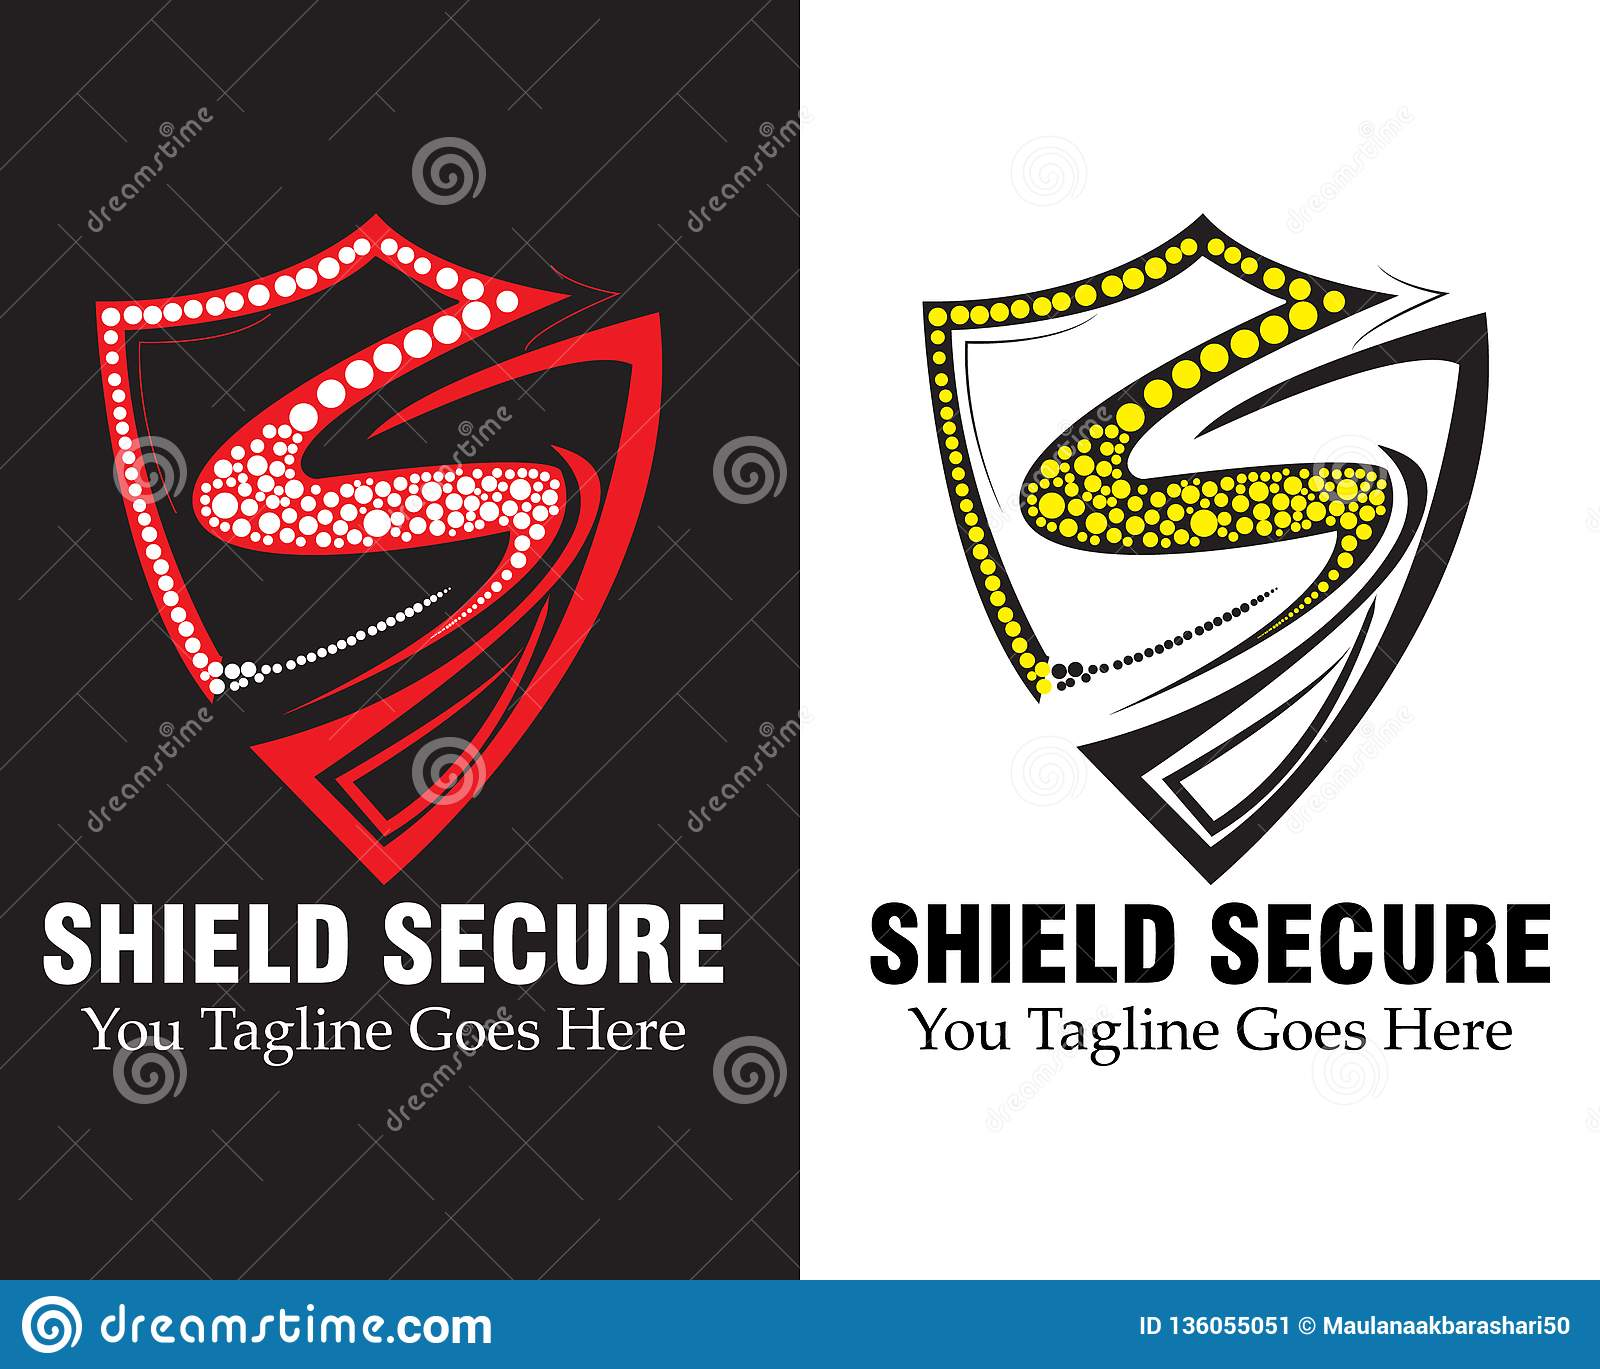 shield logo vector concept. with arm-shield. The letter s design from letter S form